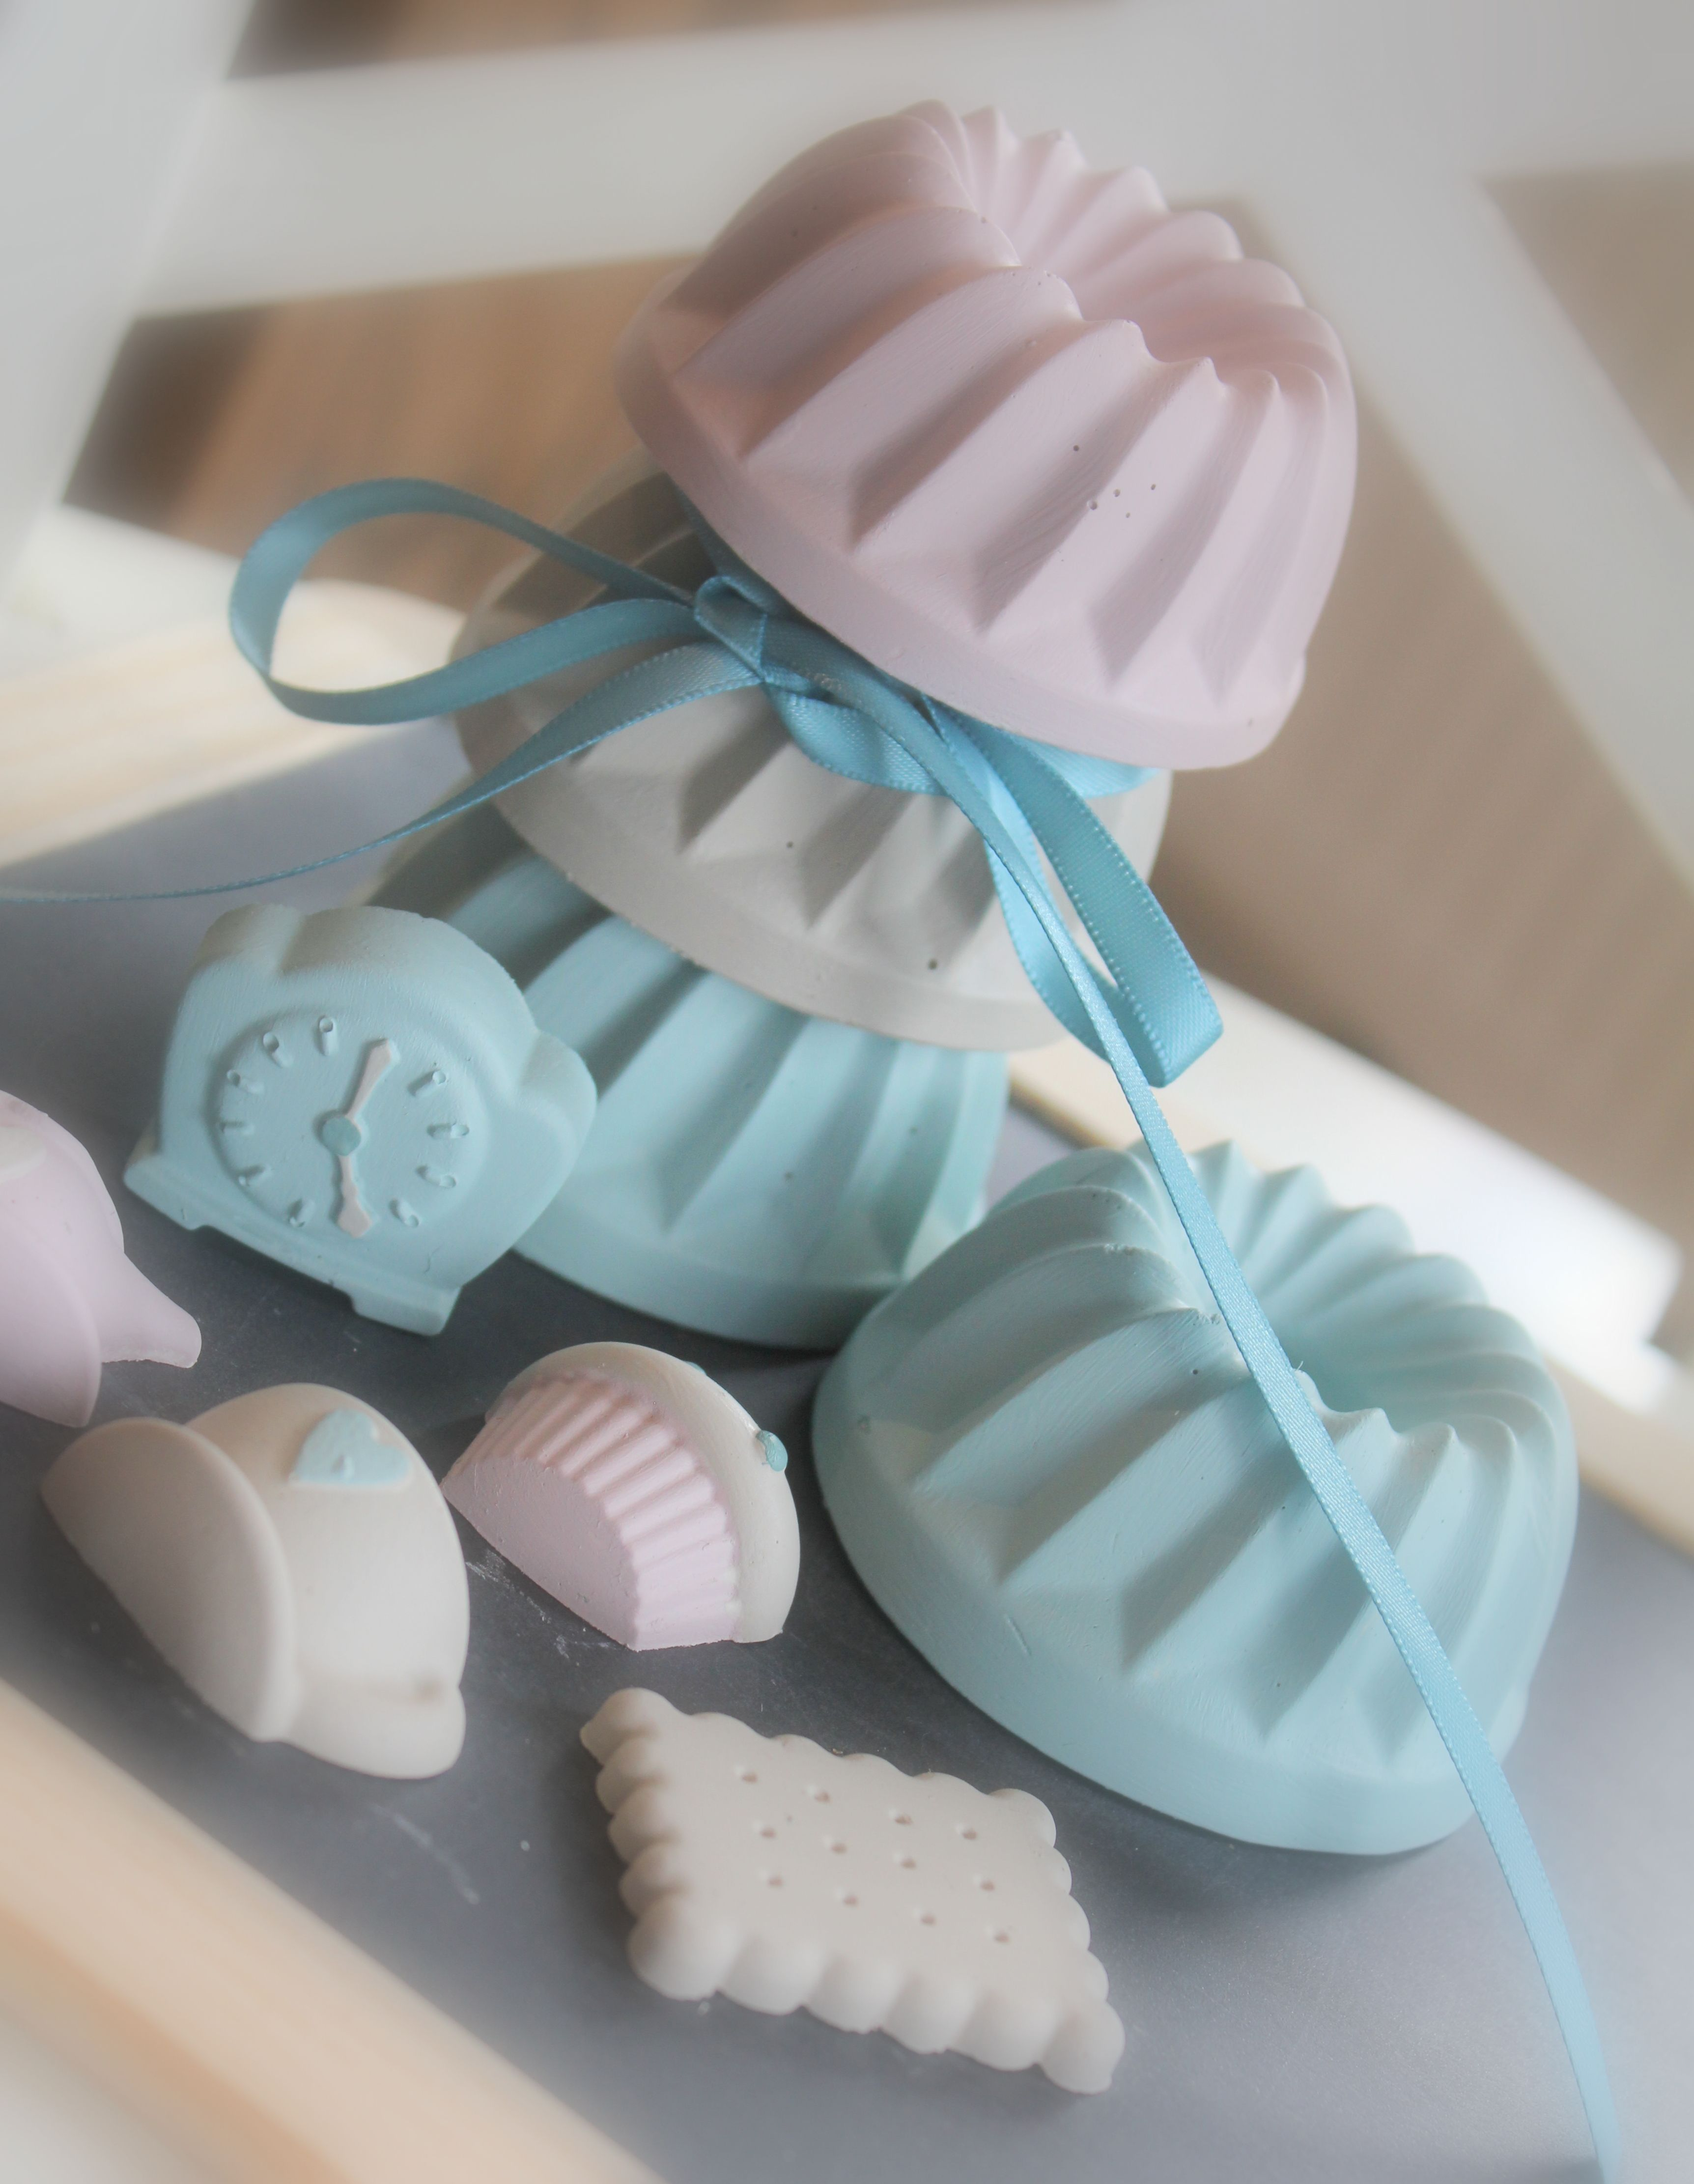 Cakejes van gips geverfd met painting the past le chic cards